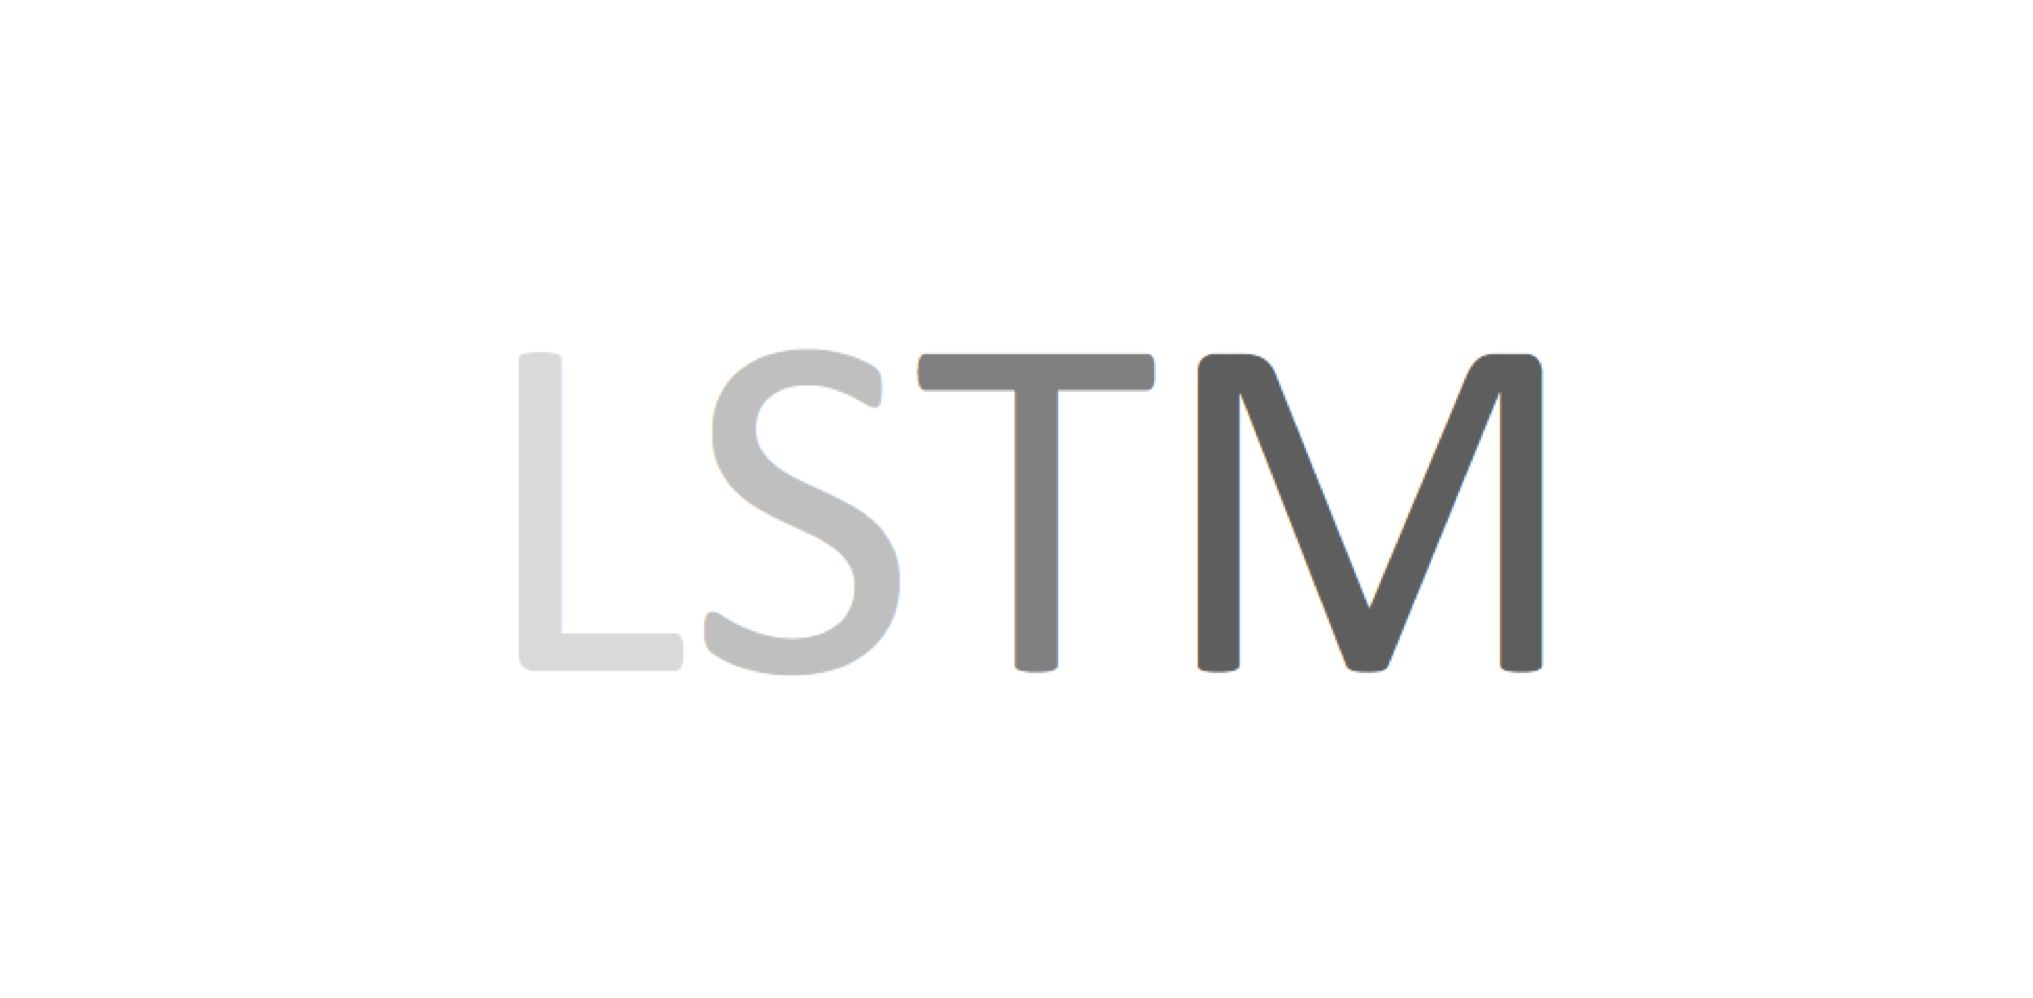 Step-by-step to LSTM: 解析LSTM神经网络设计原理